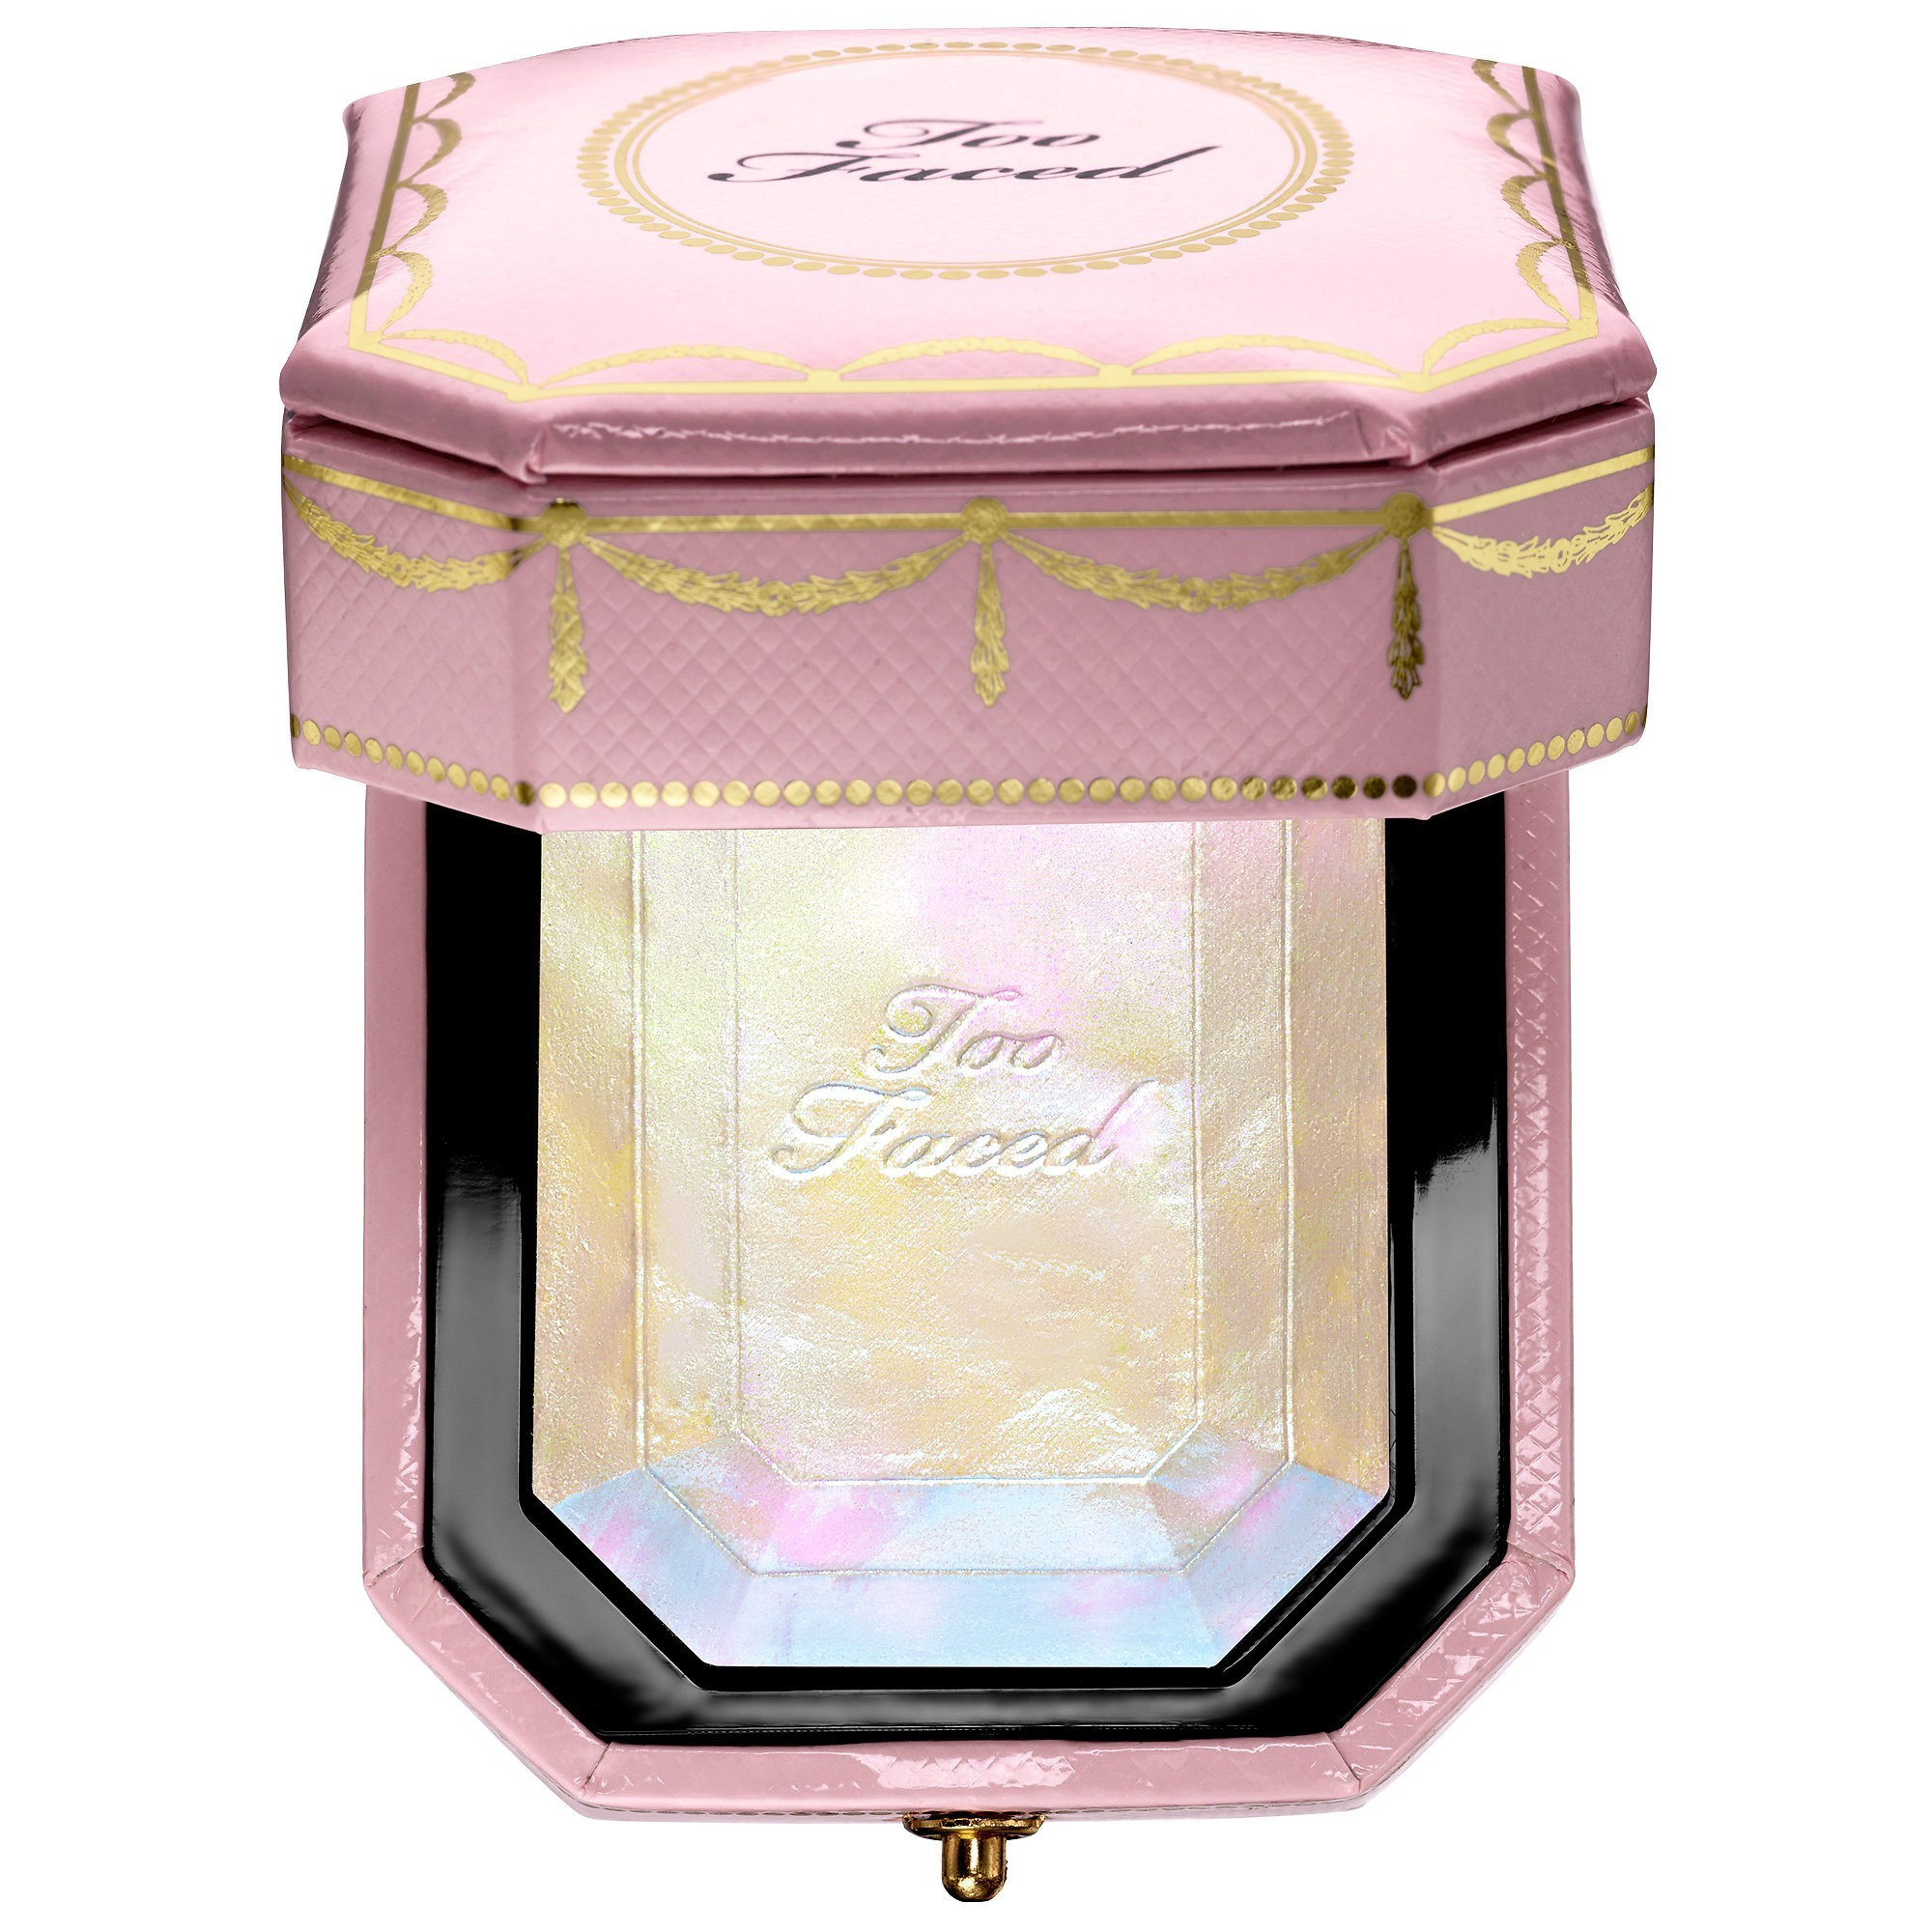 Too Faced Diamond Light Multi-Use Highlighter